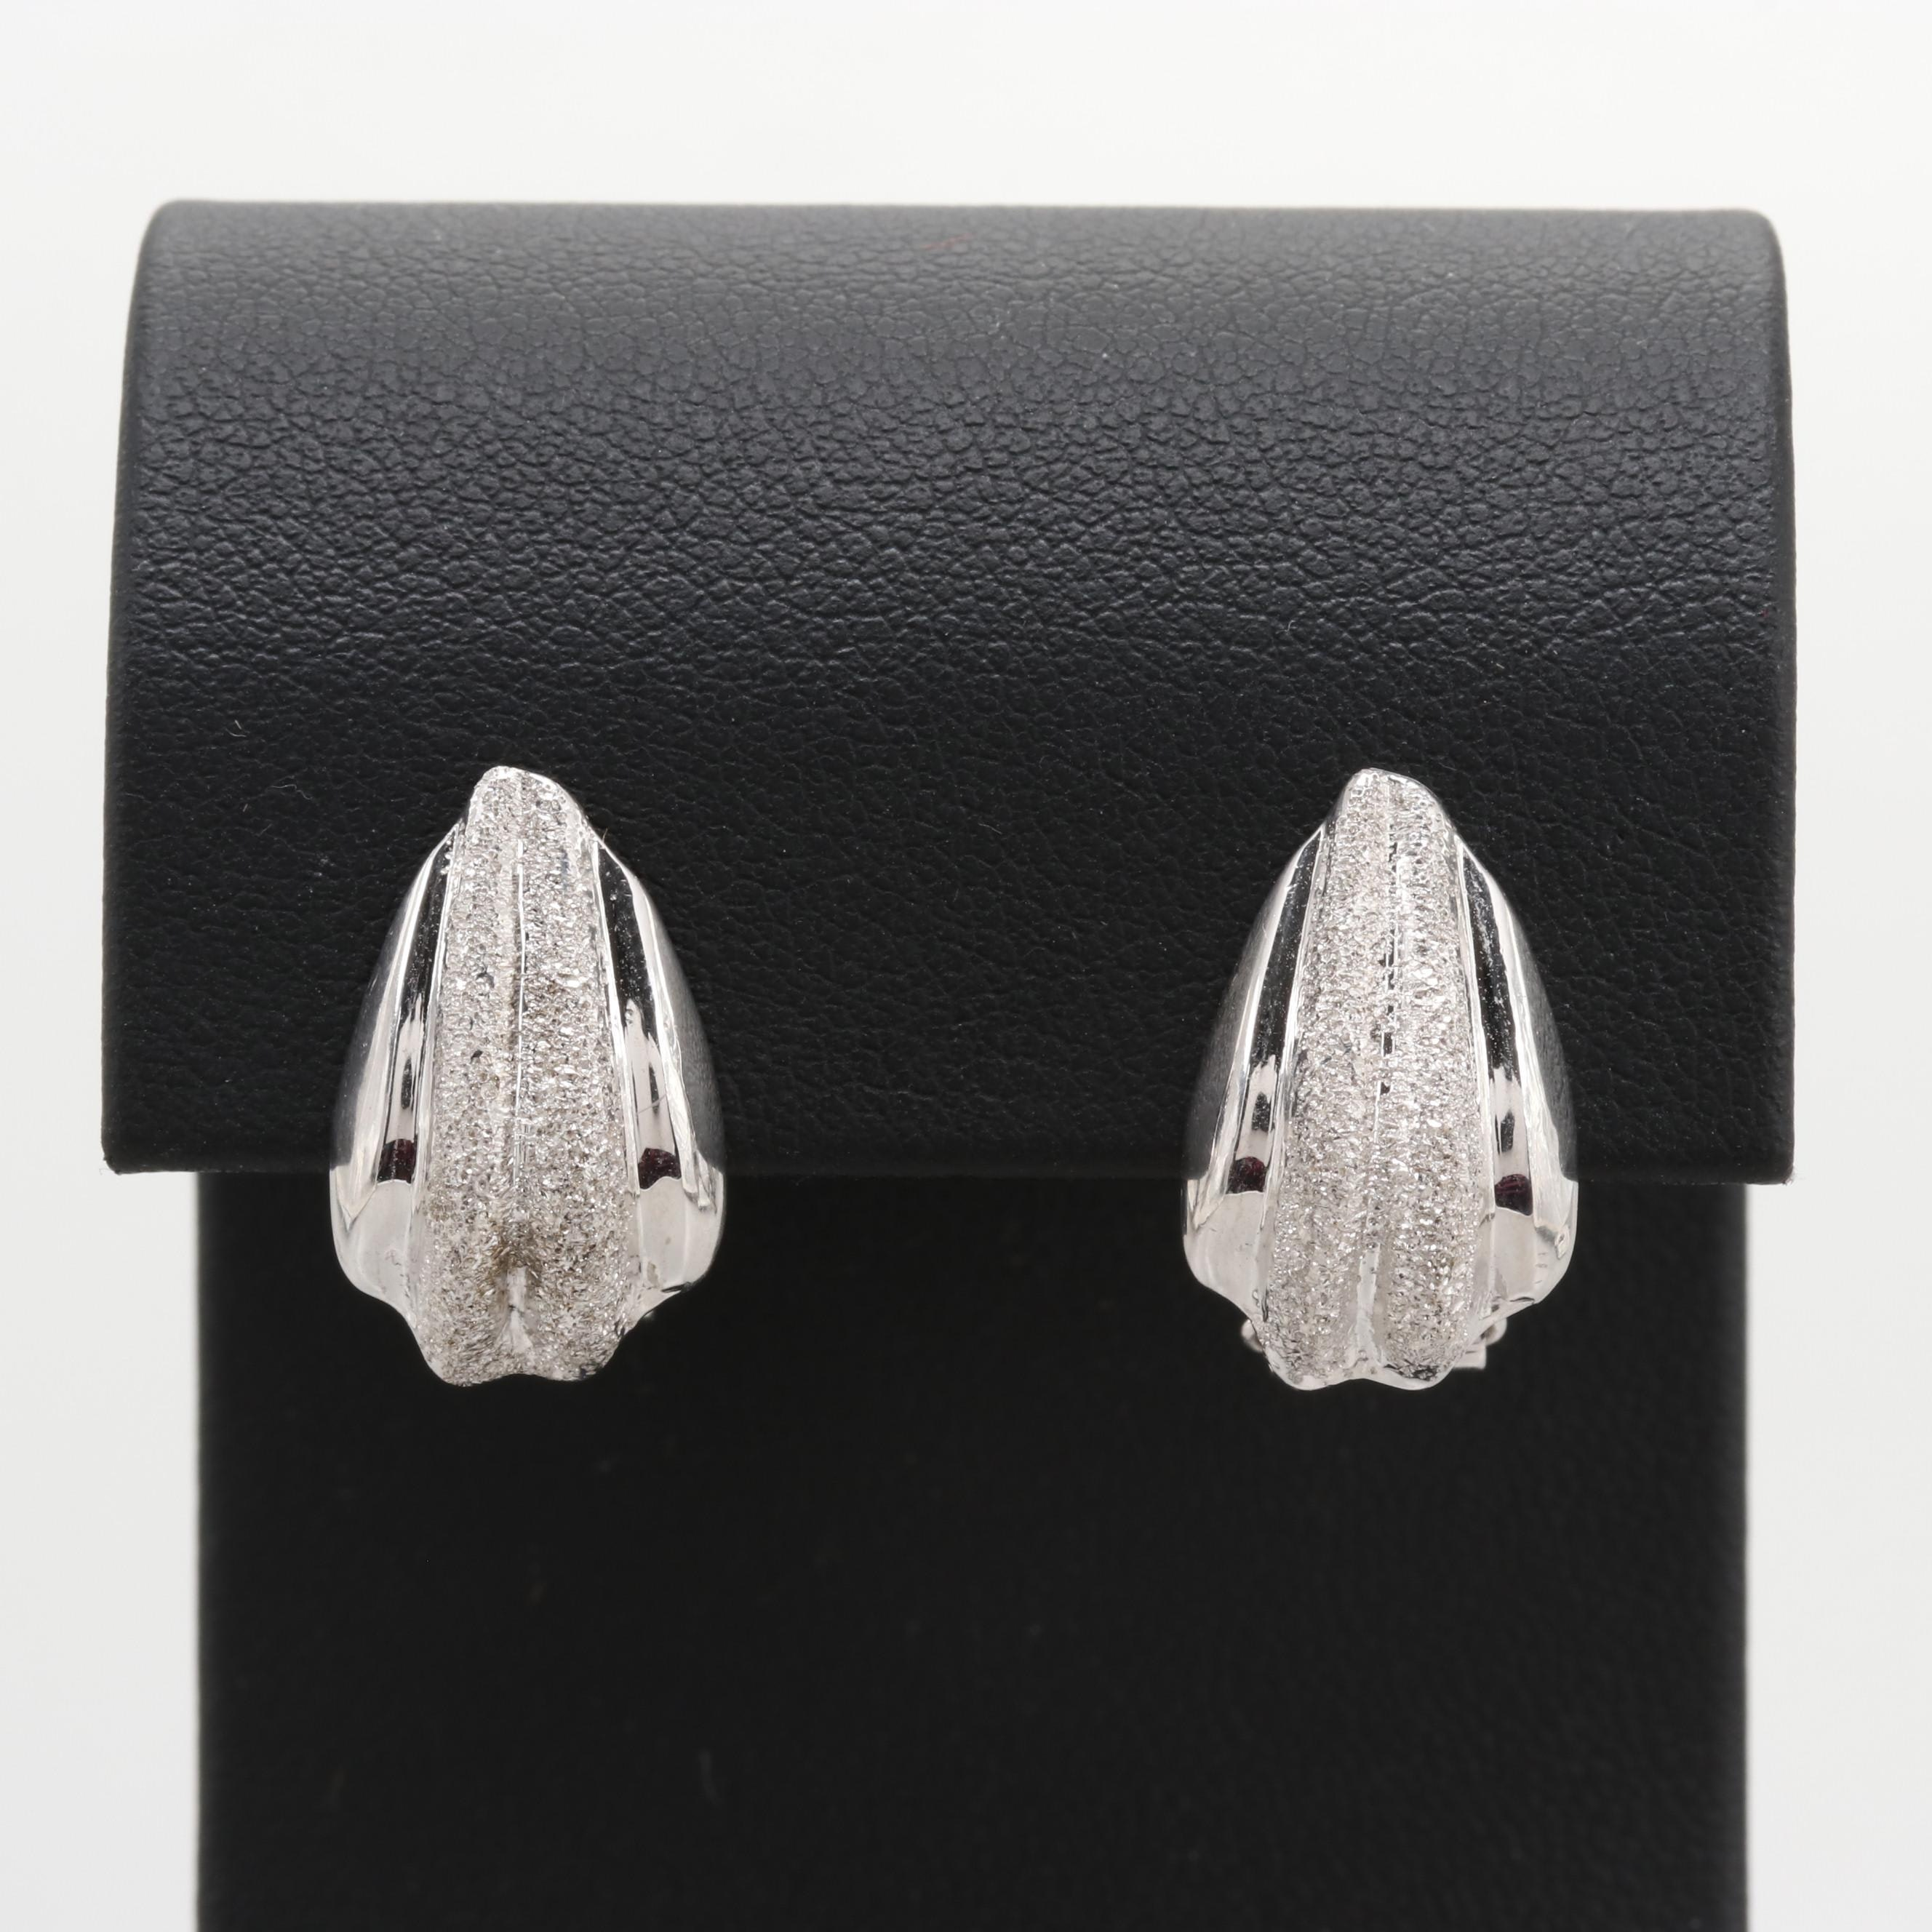 18K White Gold Earrings with Textured Accents